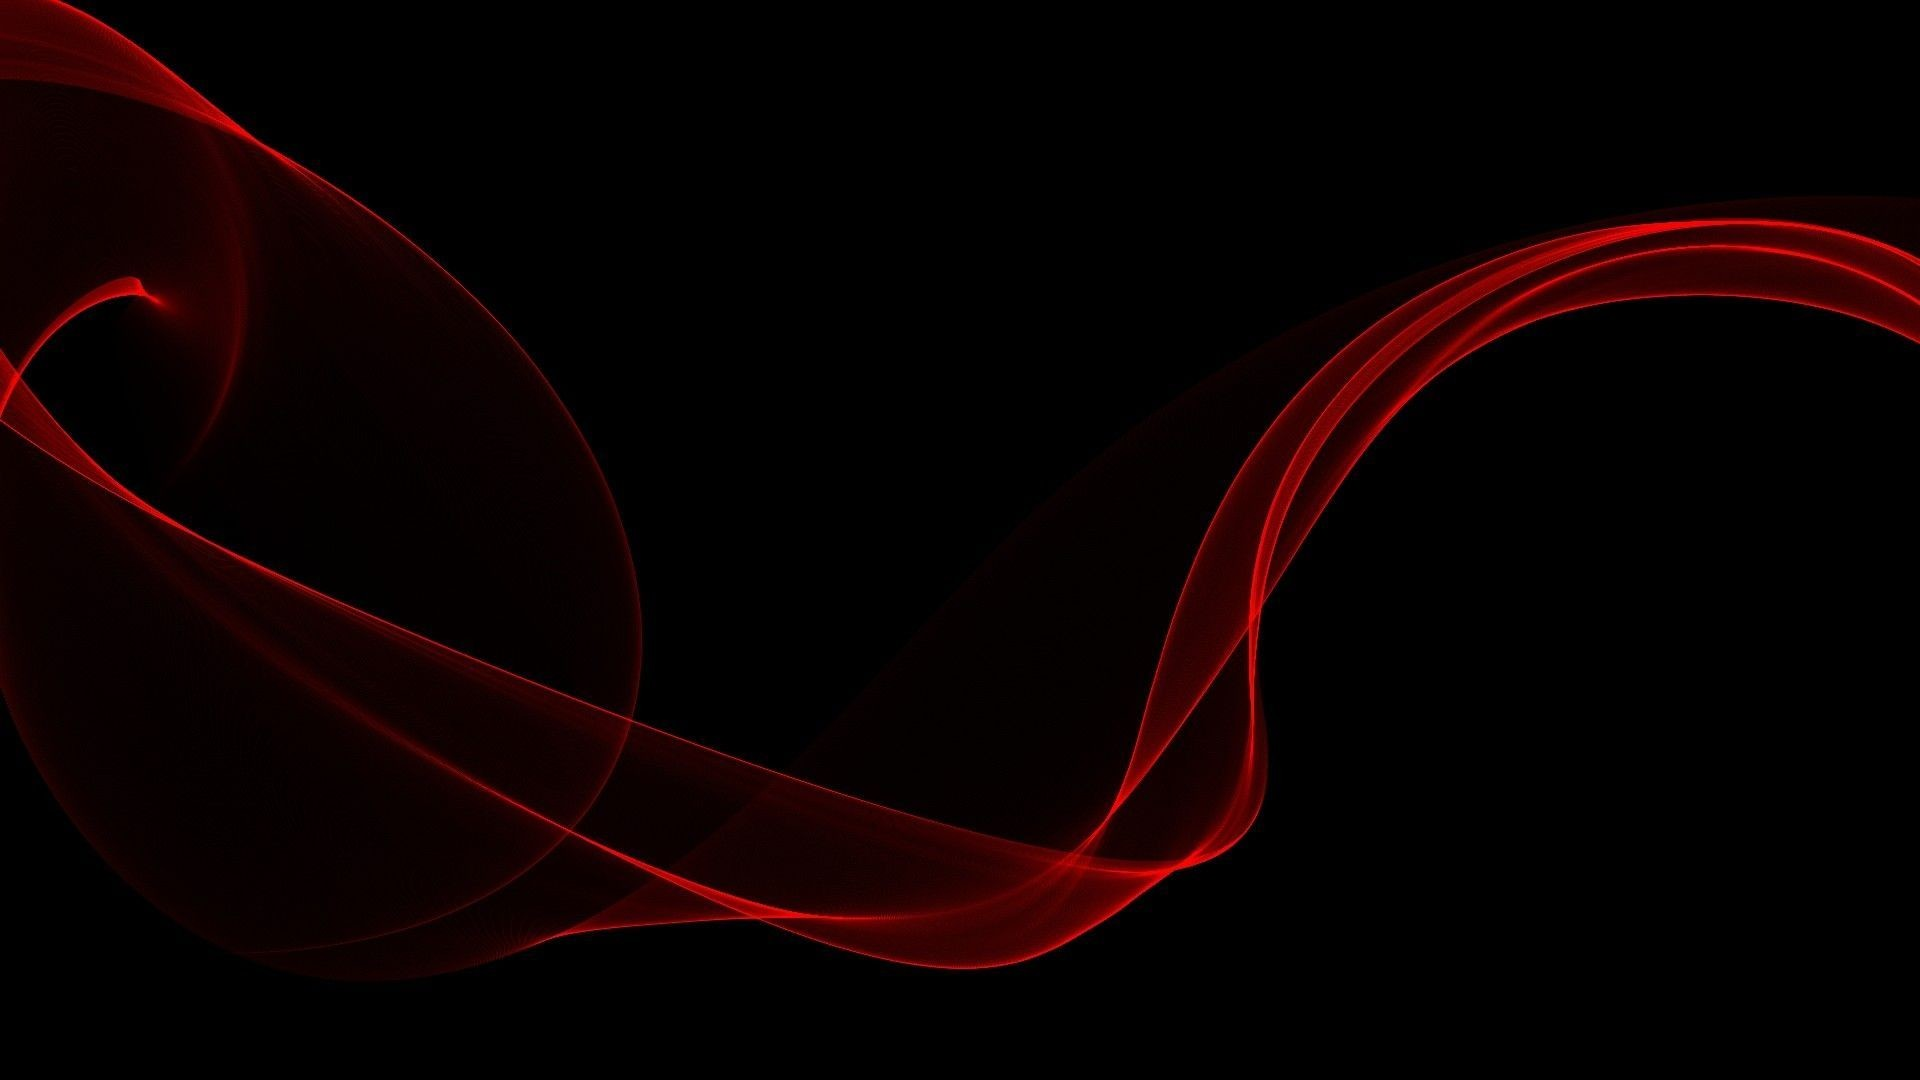 Black and red wallpaper hd for Black red wallpaper